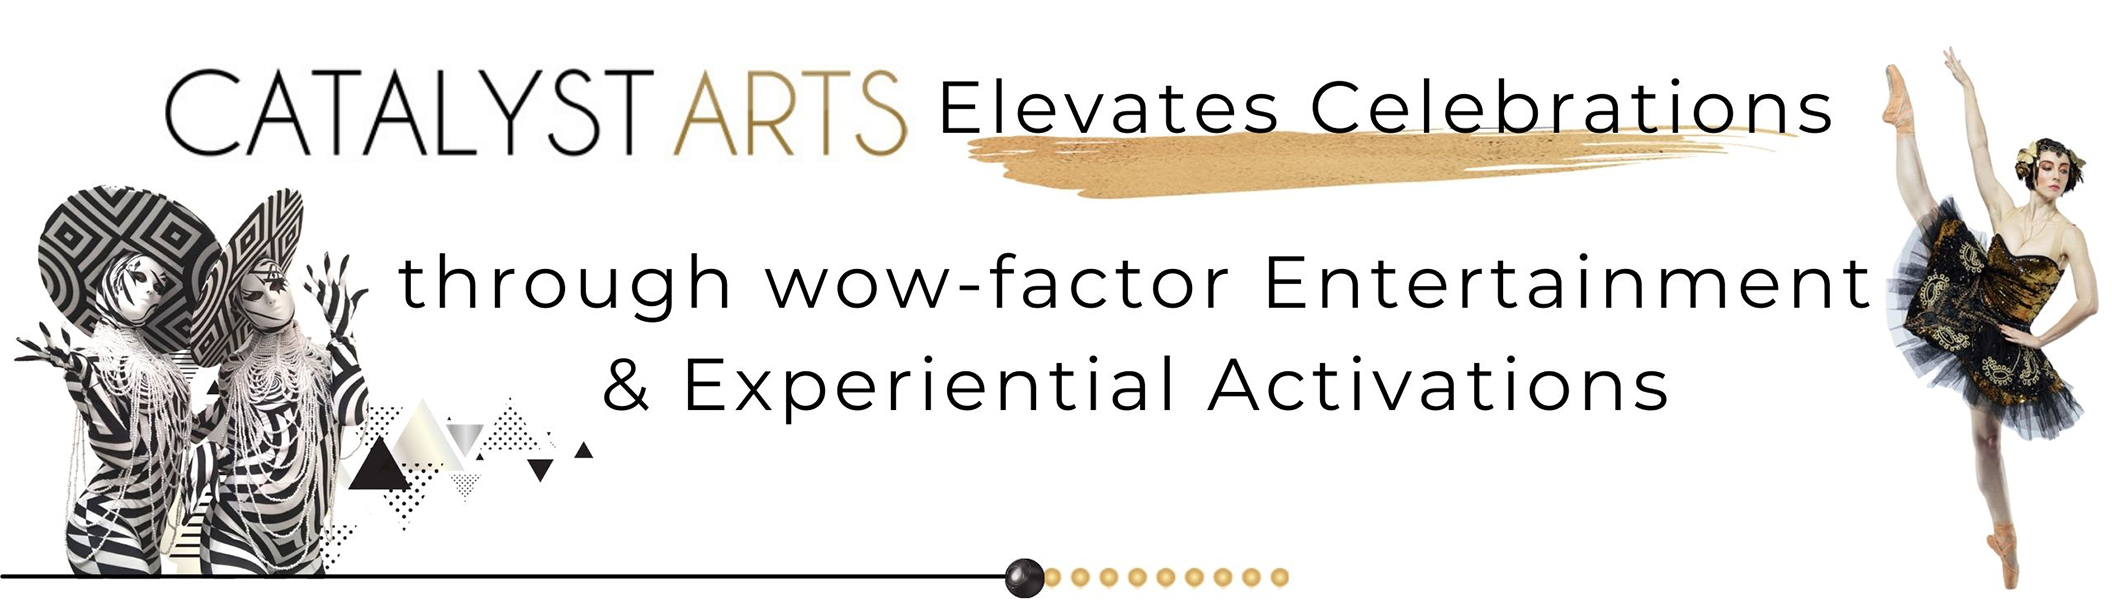 Catalyst Arts elevates celebrations with wow-factor entertainment & experiential activations